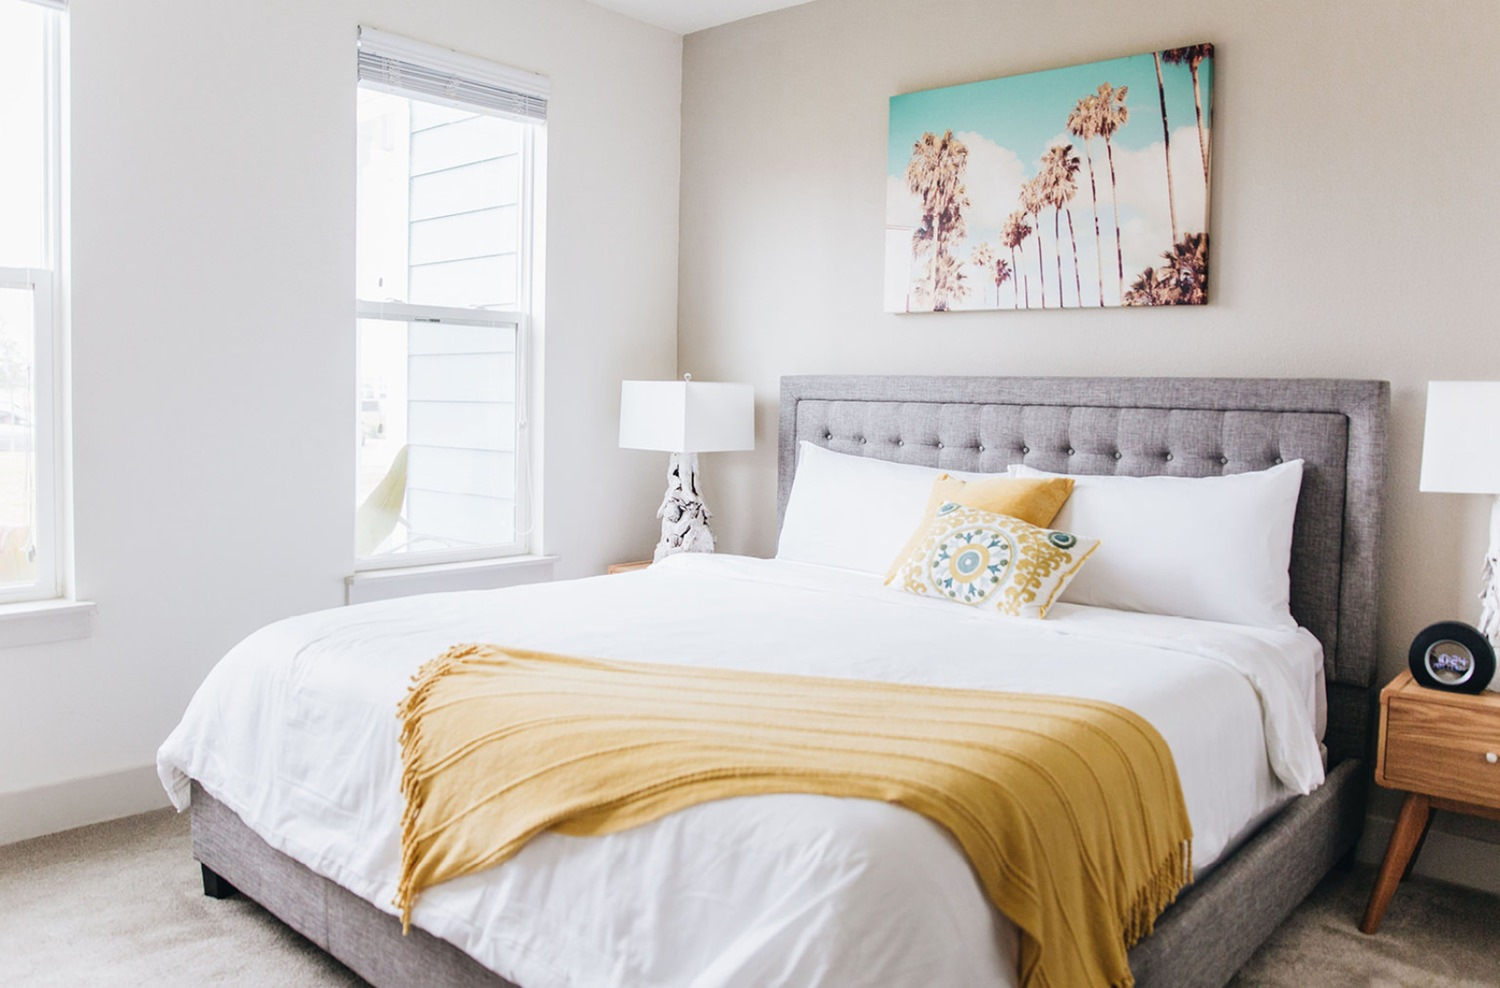 A bedroom with a bed that is covered in pillows and white sheets that is next to a window.